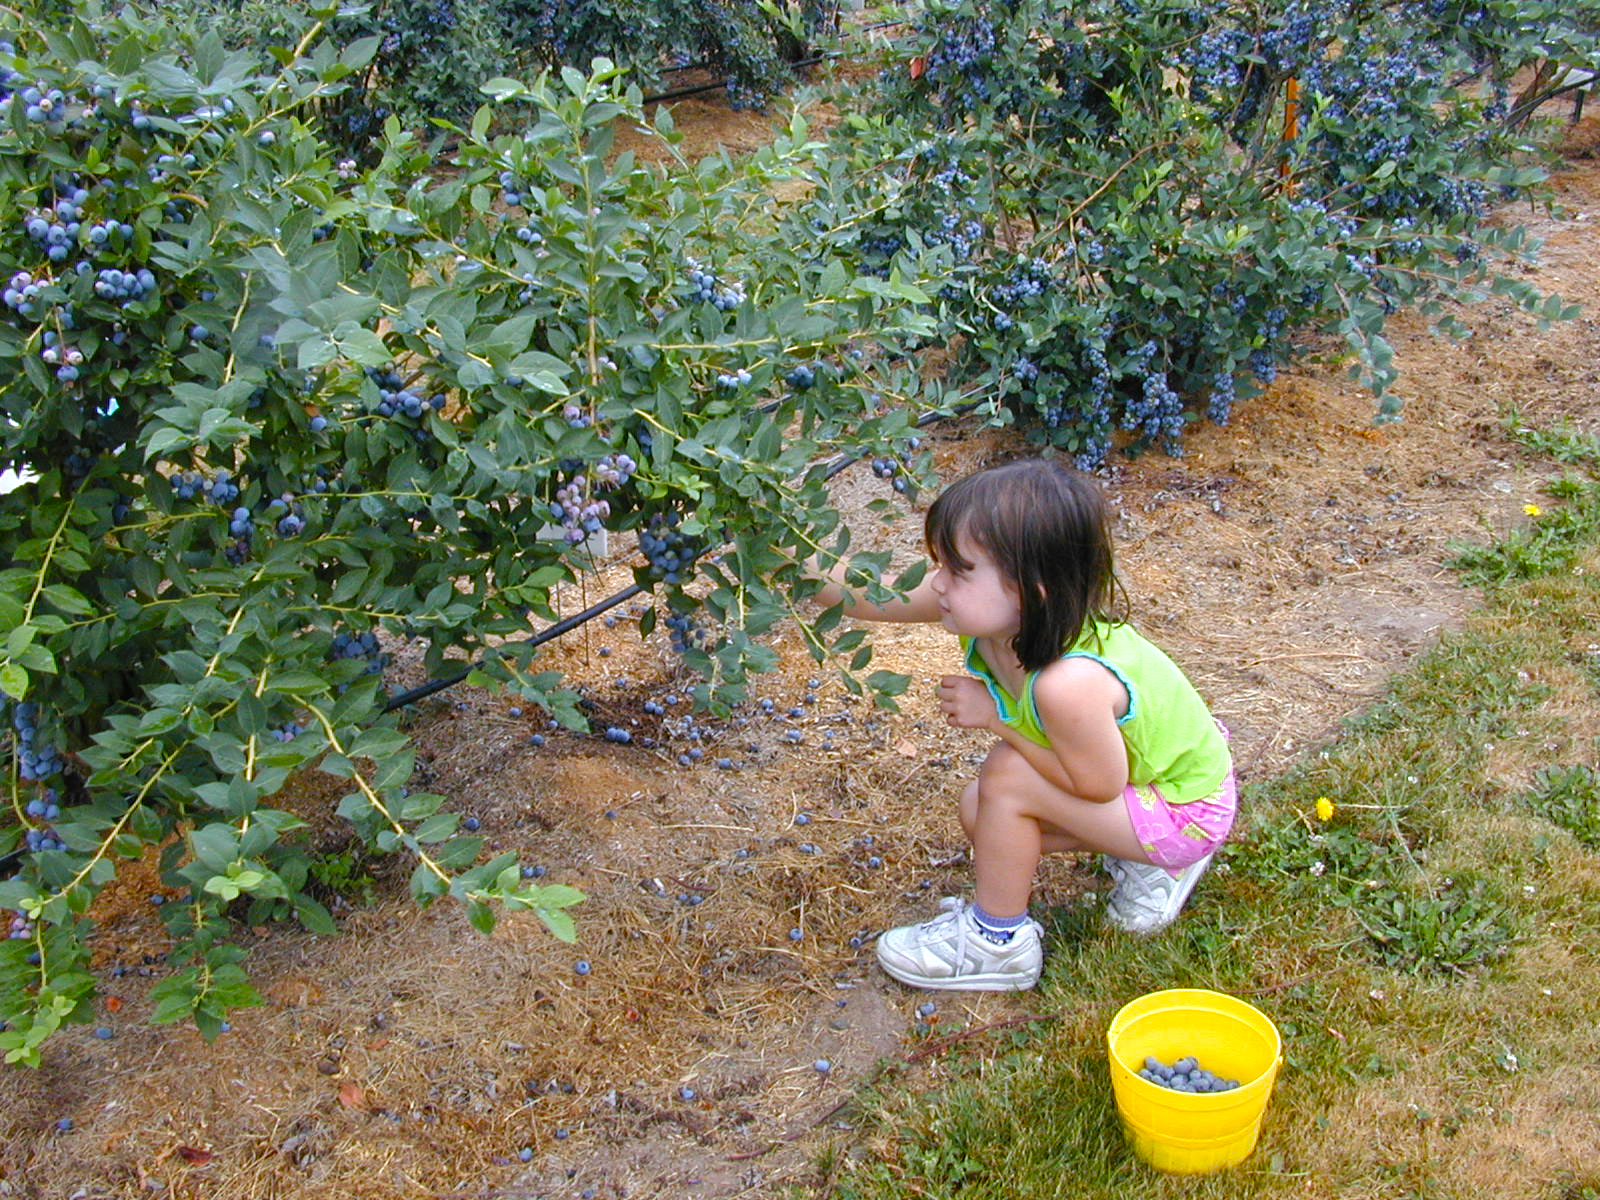 A little girl picks berries into a yellow bucket